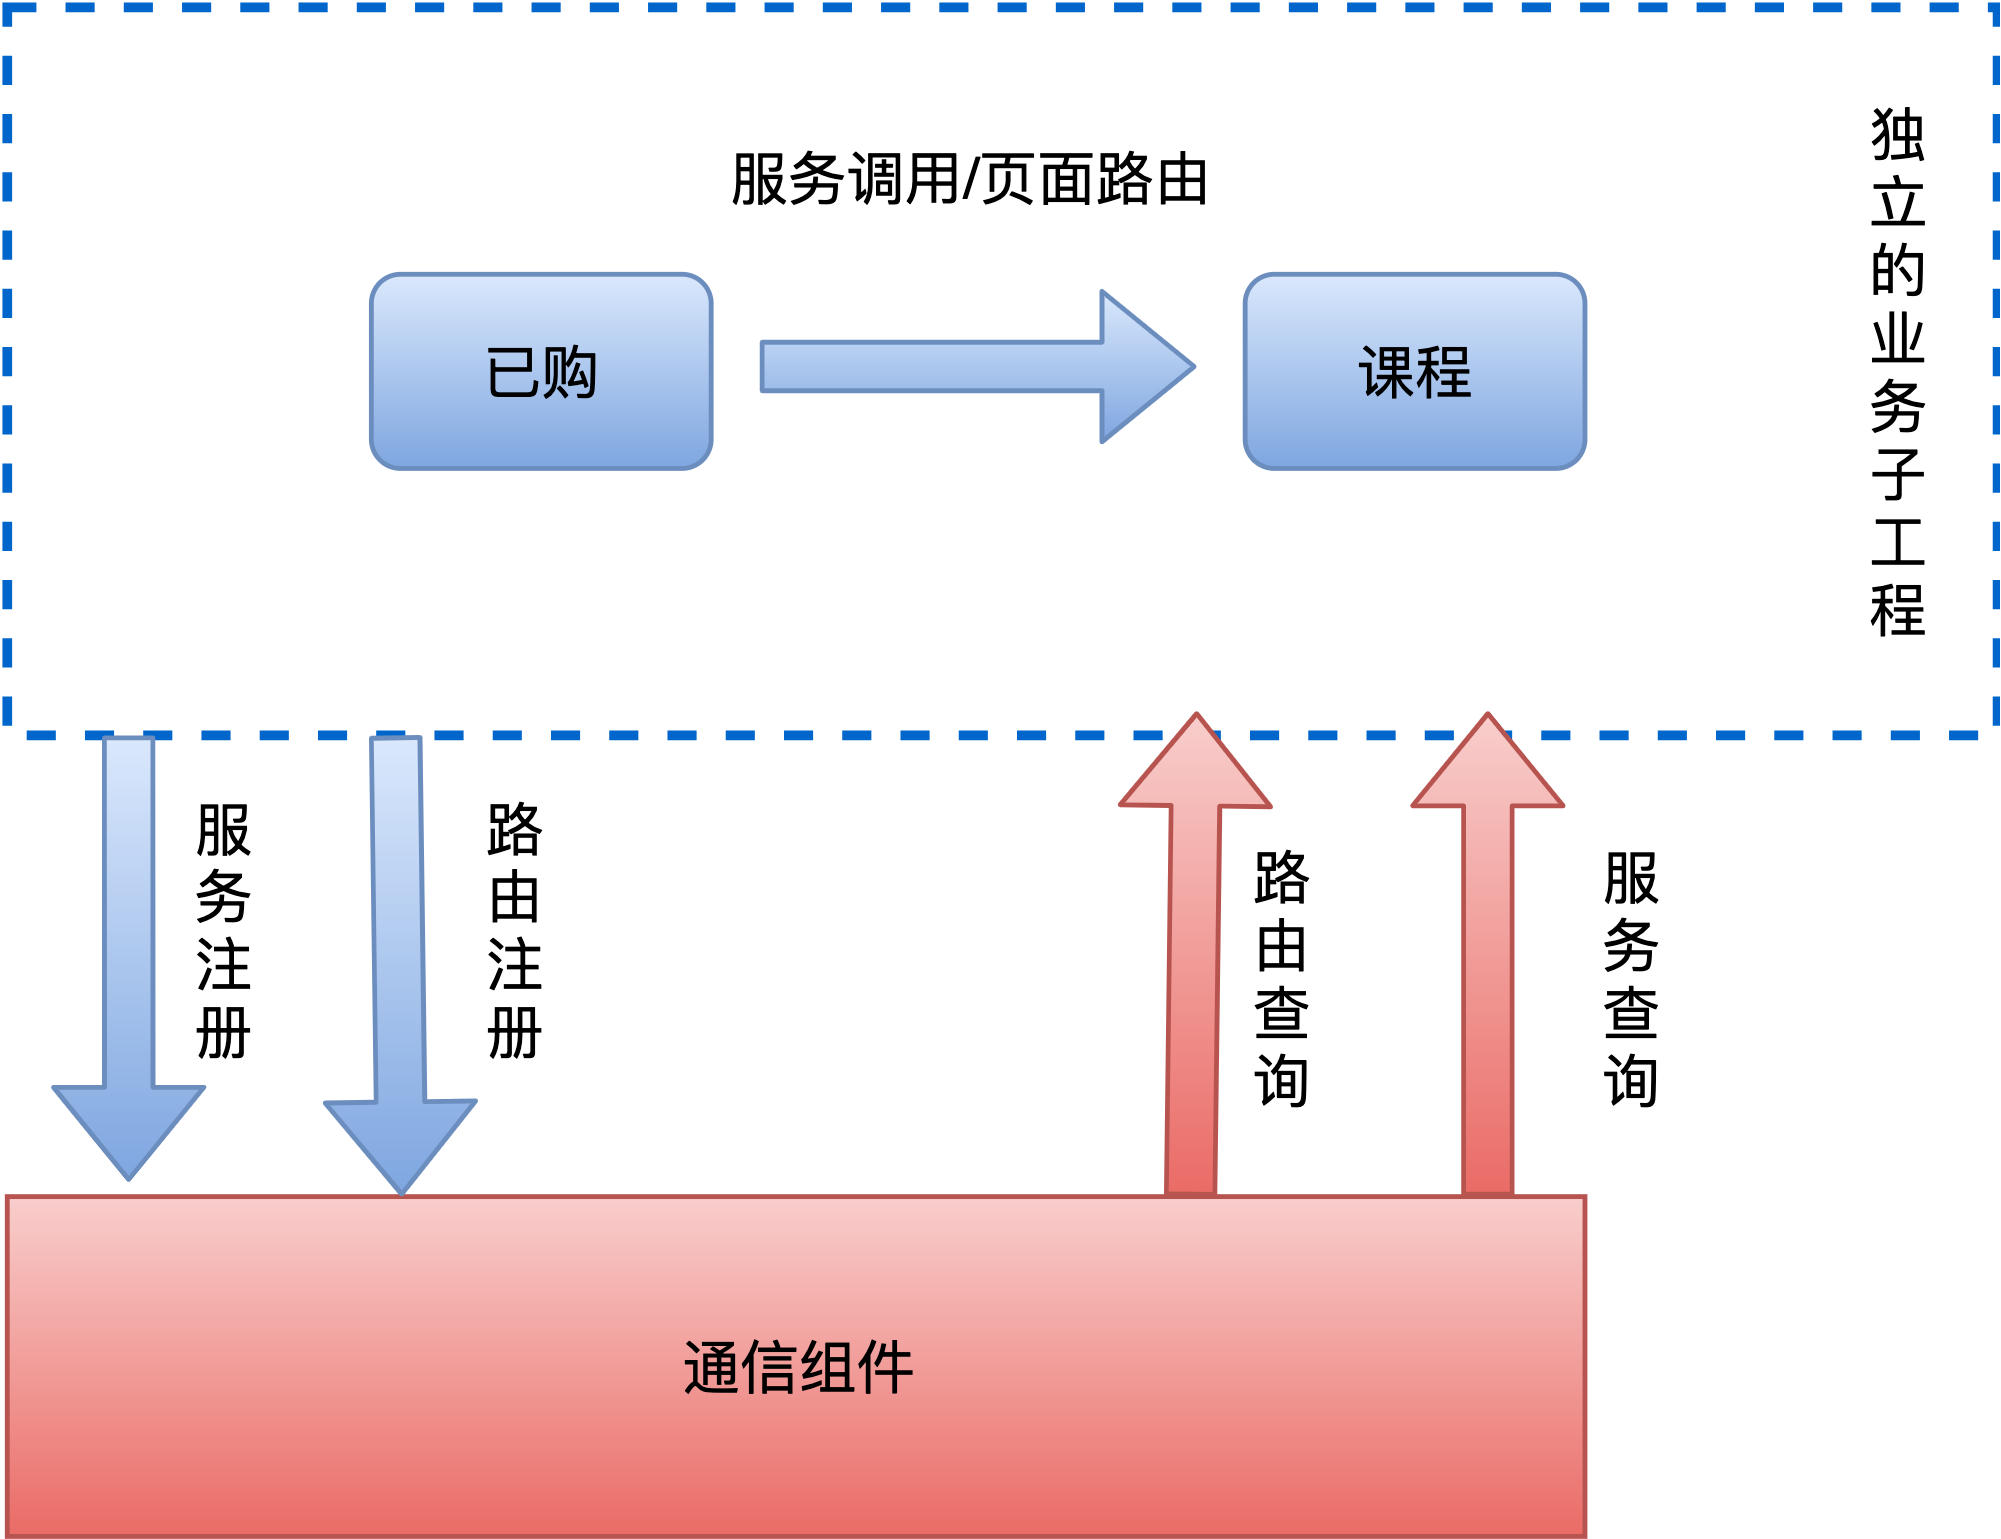 Untitled Diagram (21).png